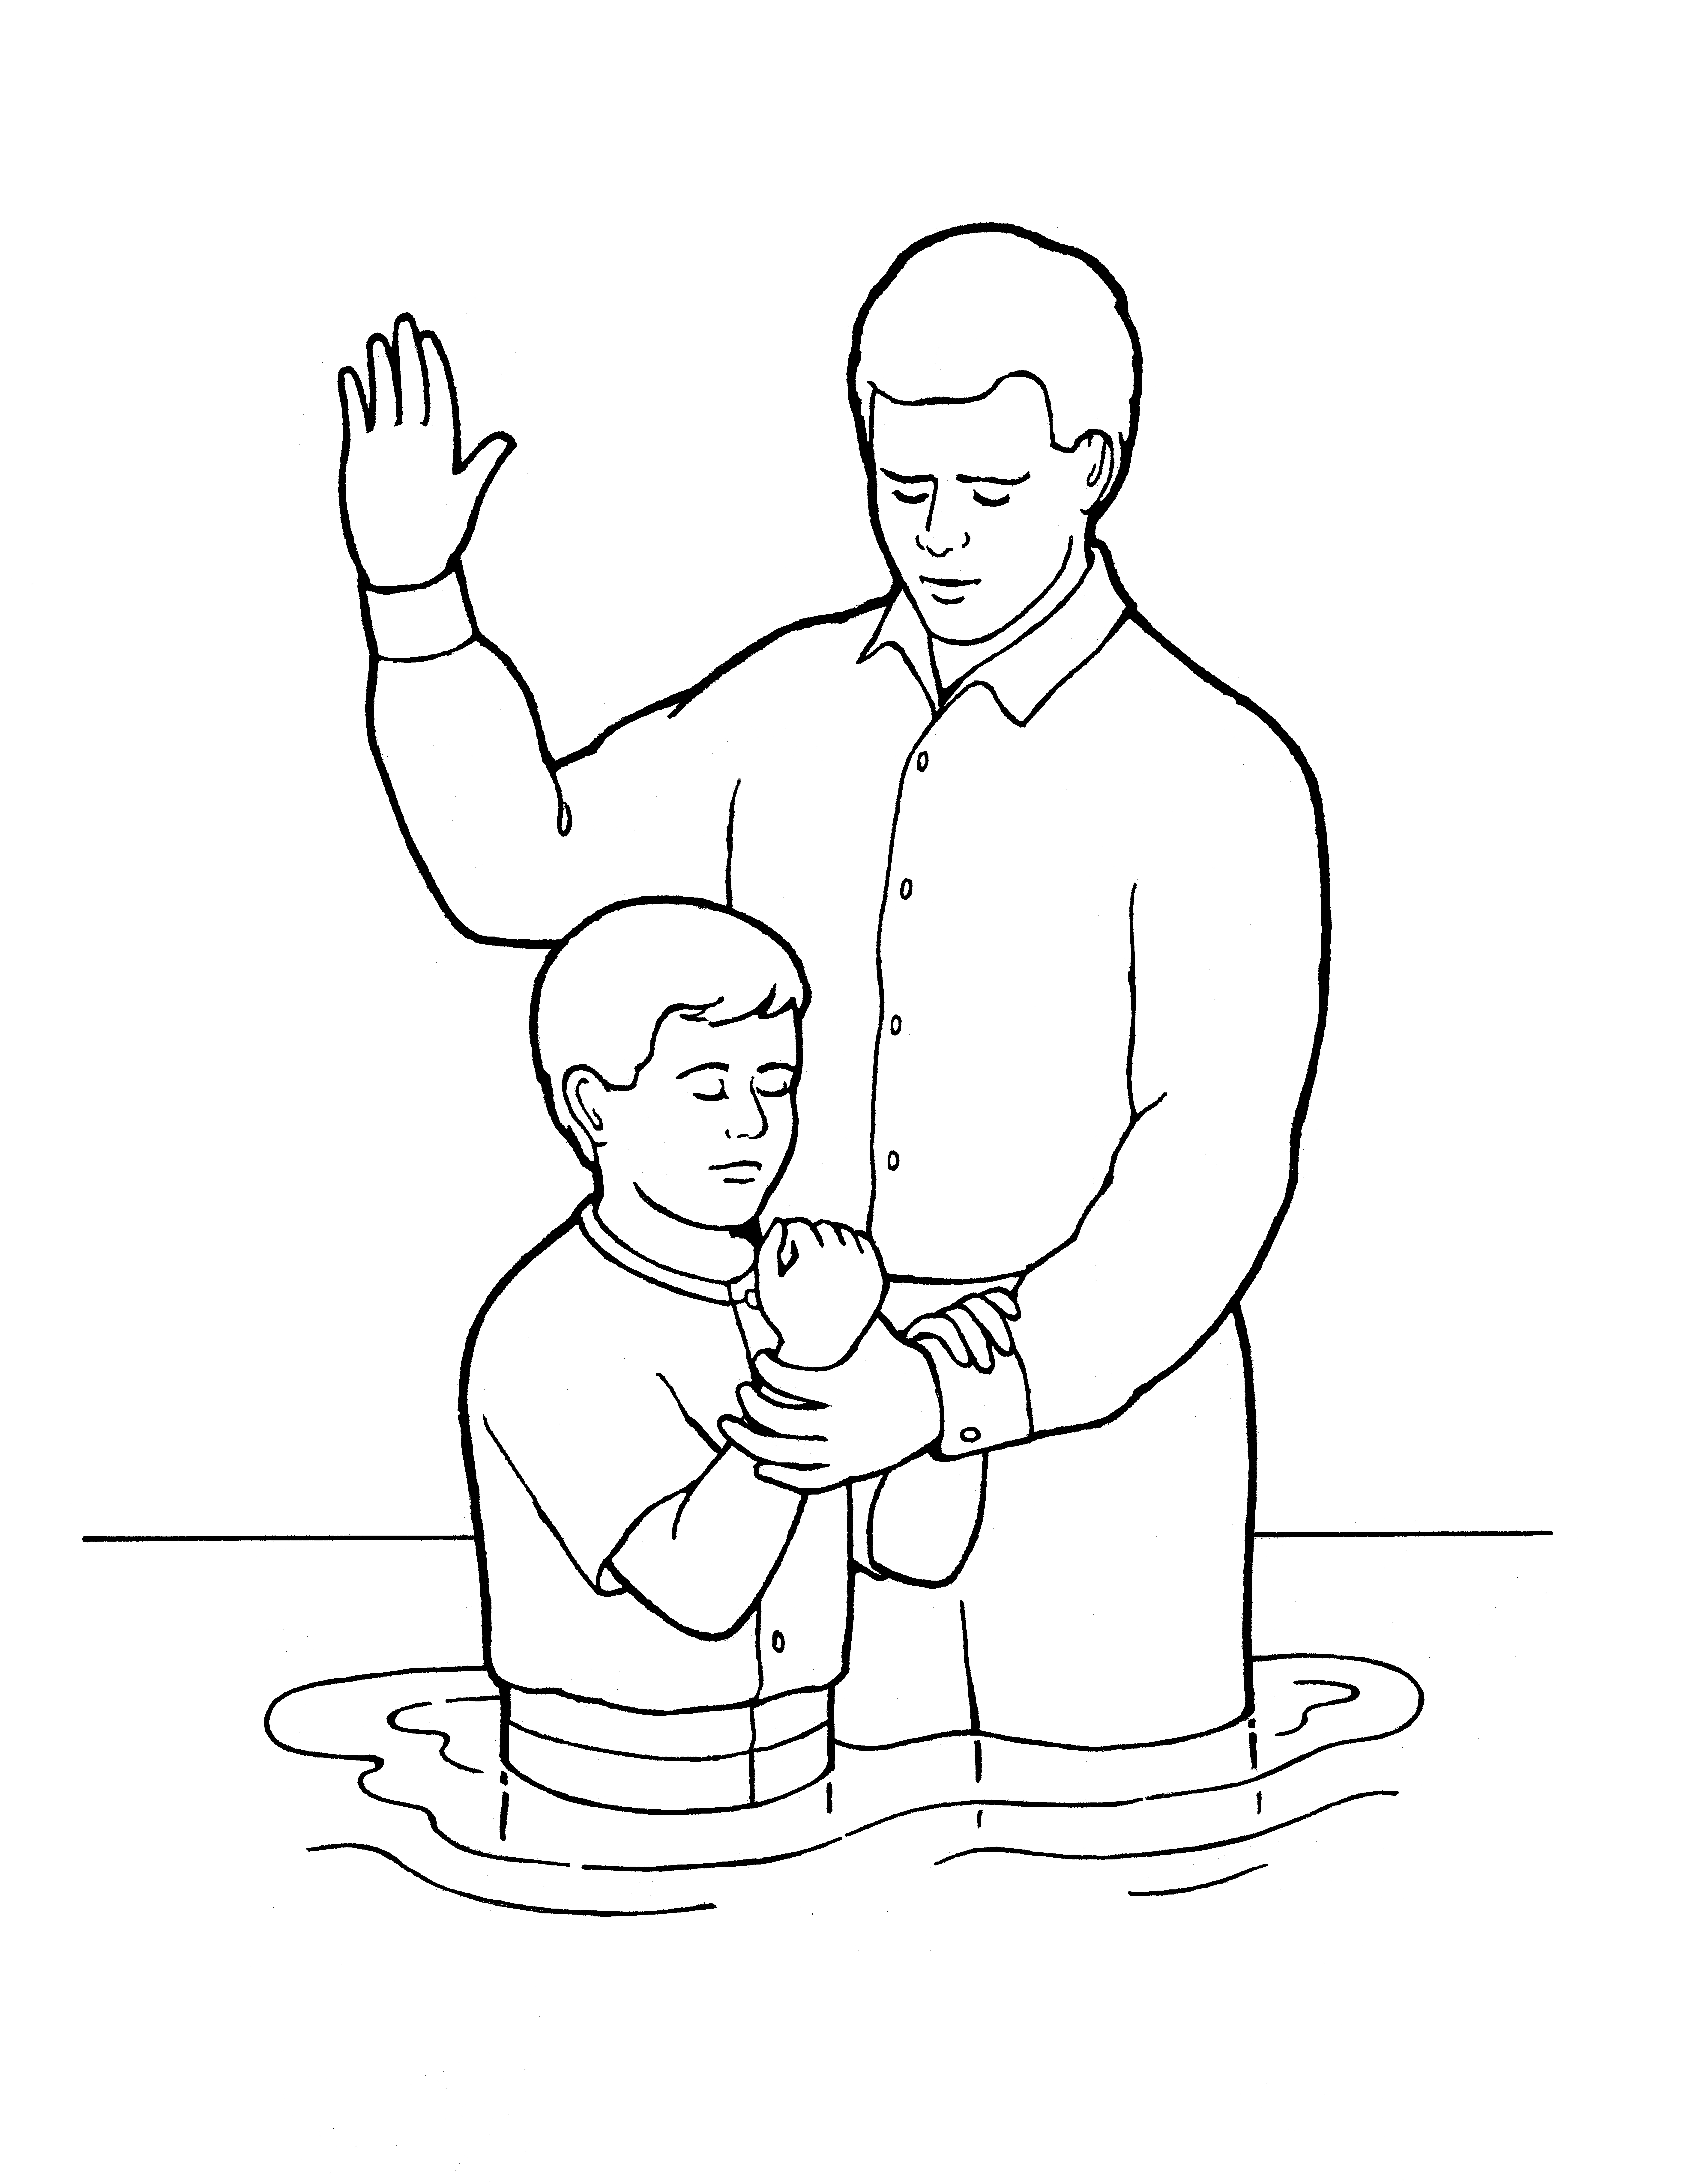 An illustration of a young boy being baptized, from the nursery manual Behold Your Little Ones (2008), page 111.